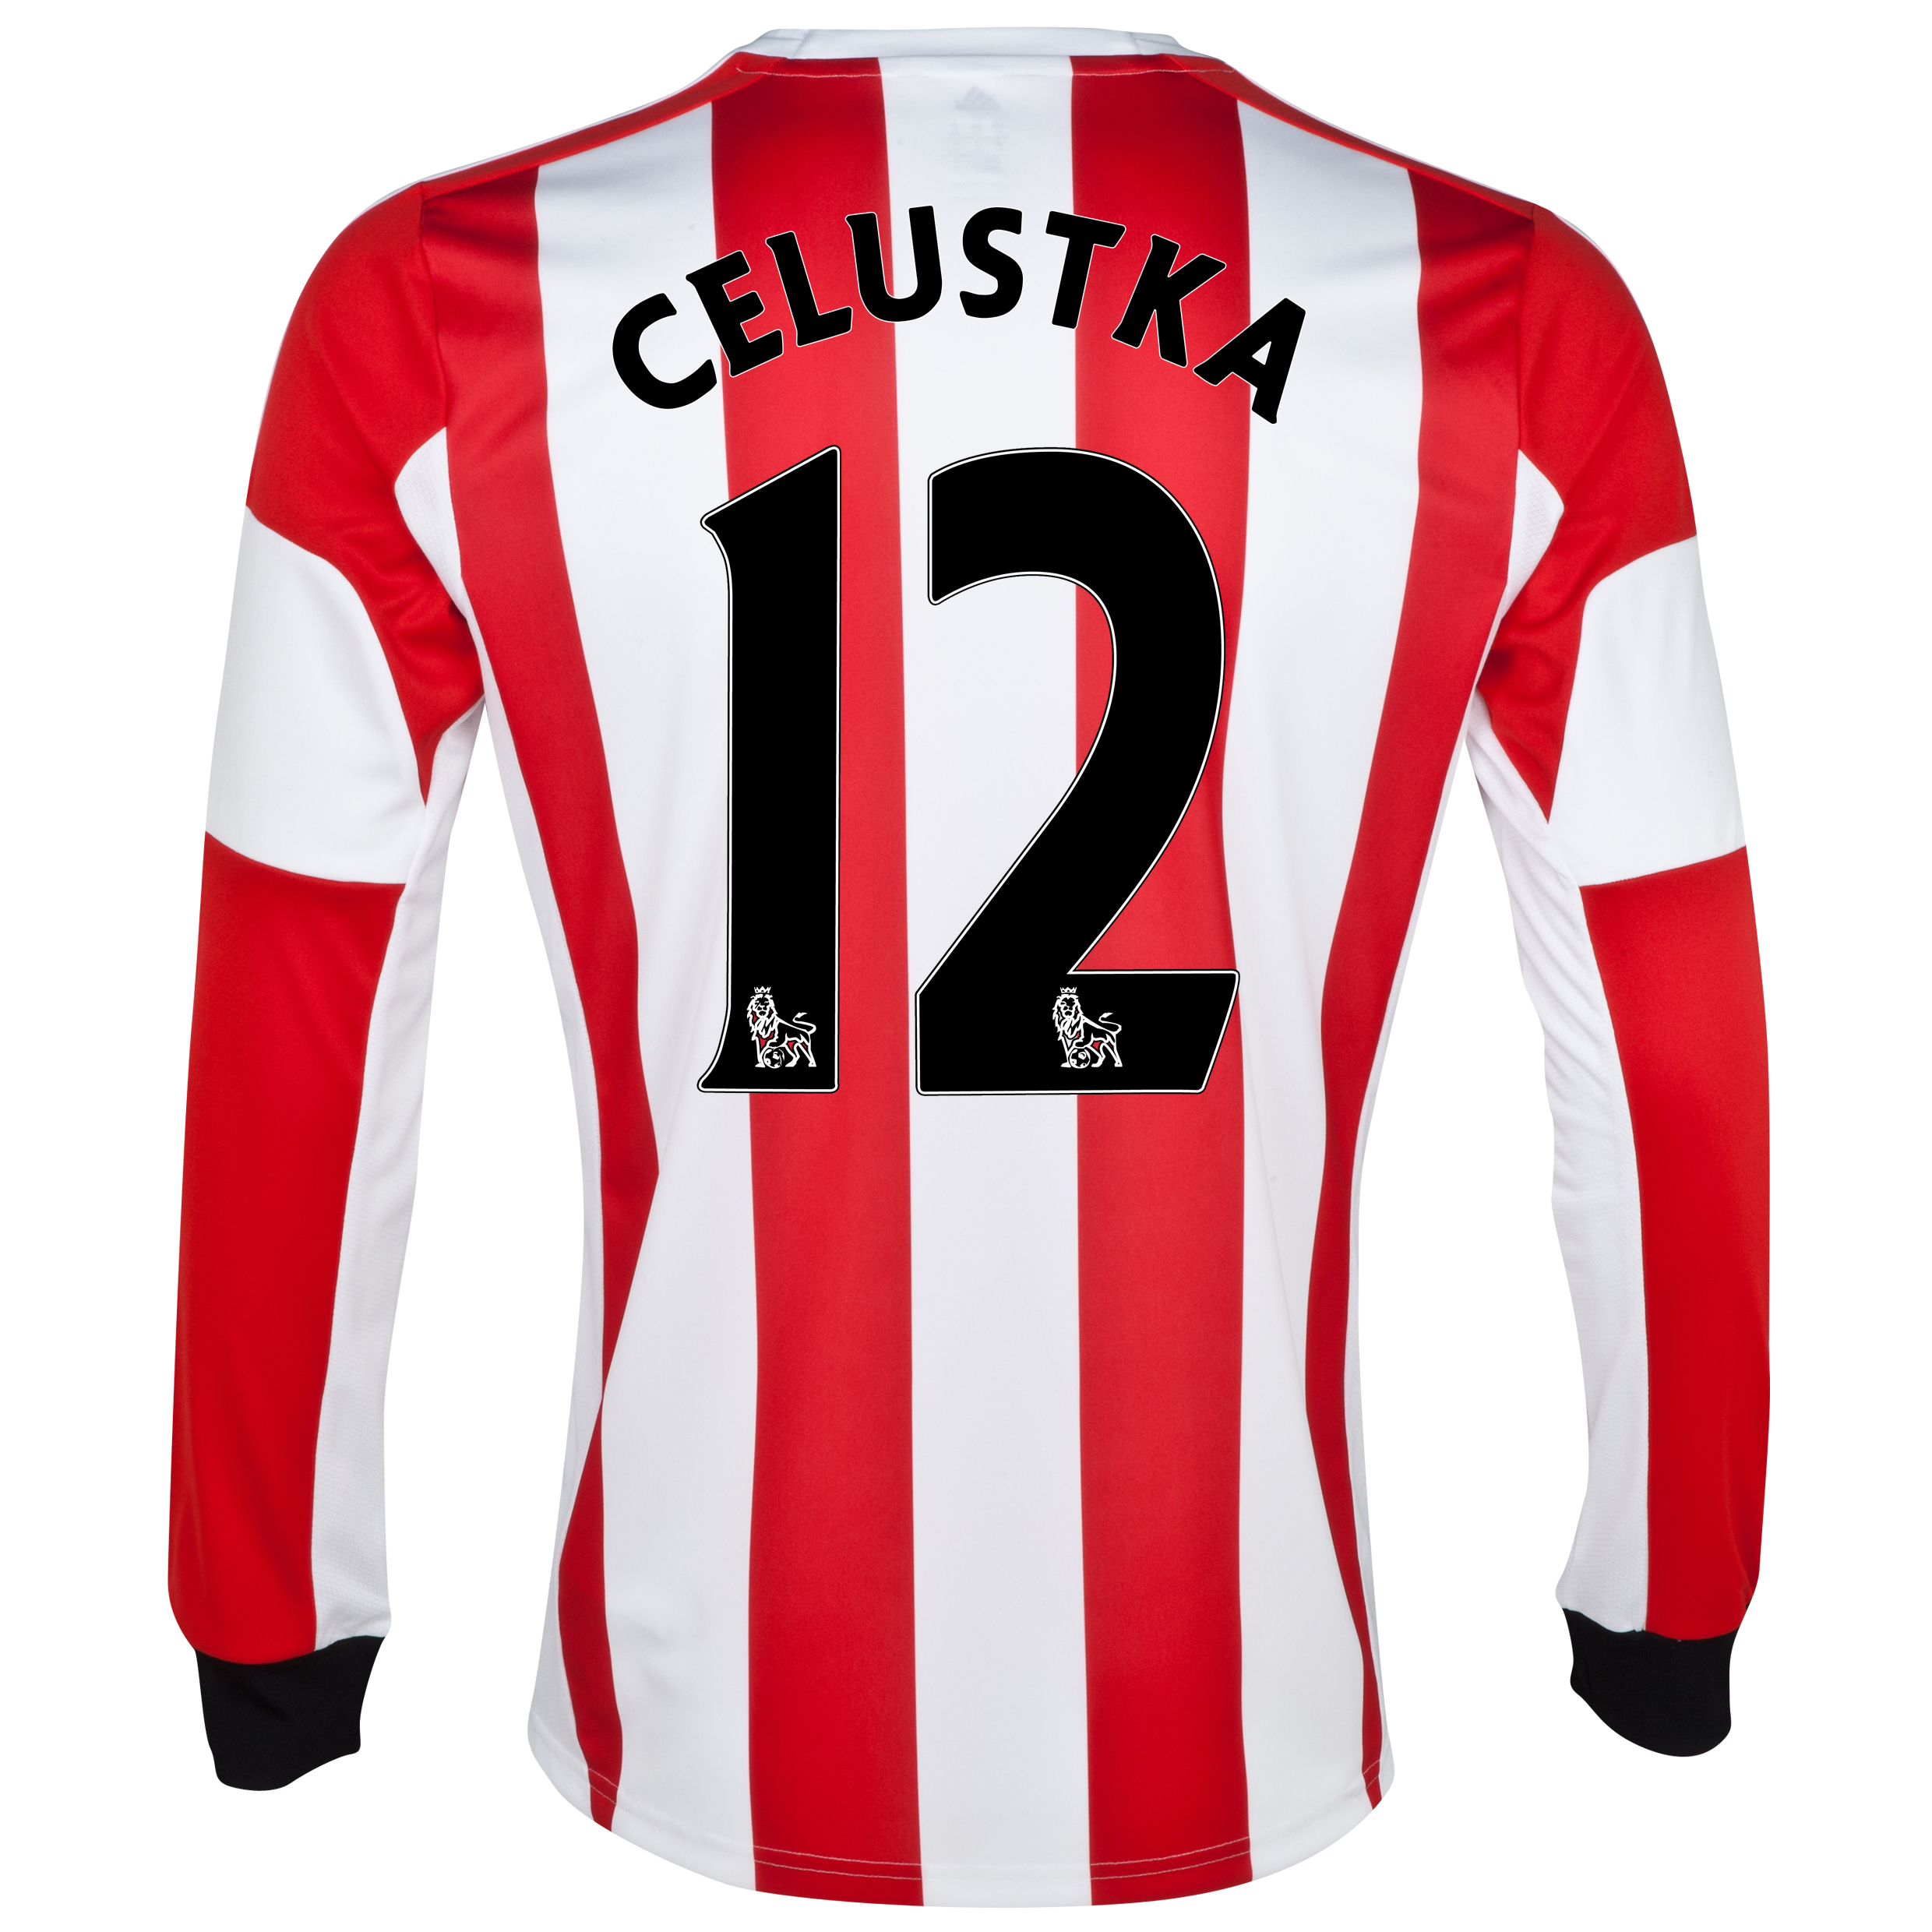 Sunderland Home Shirt 2013/14 - Long Sleeved with Celustka 12 printing